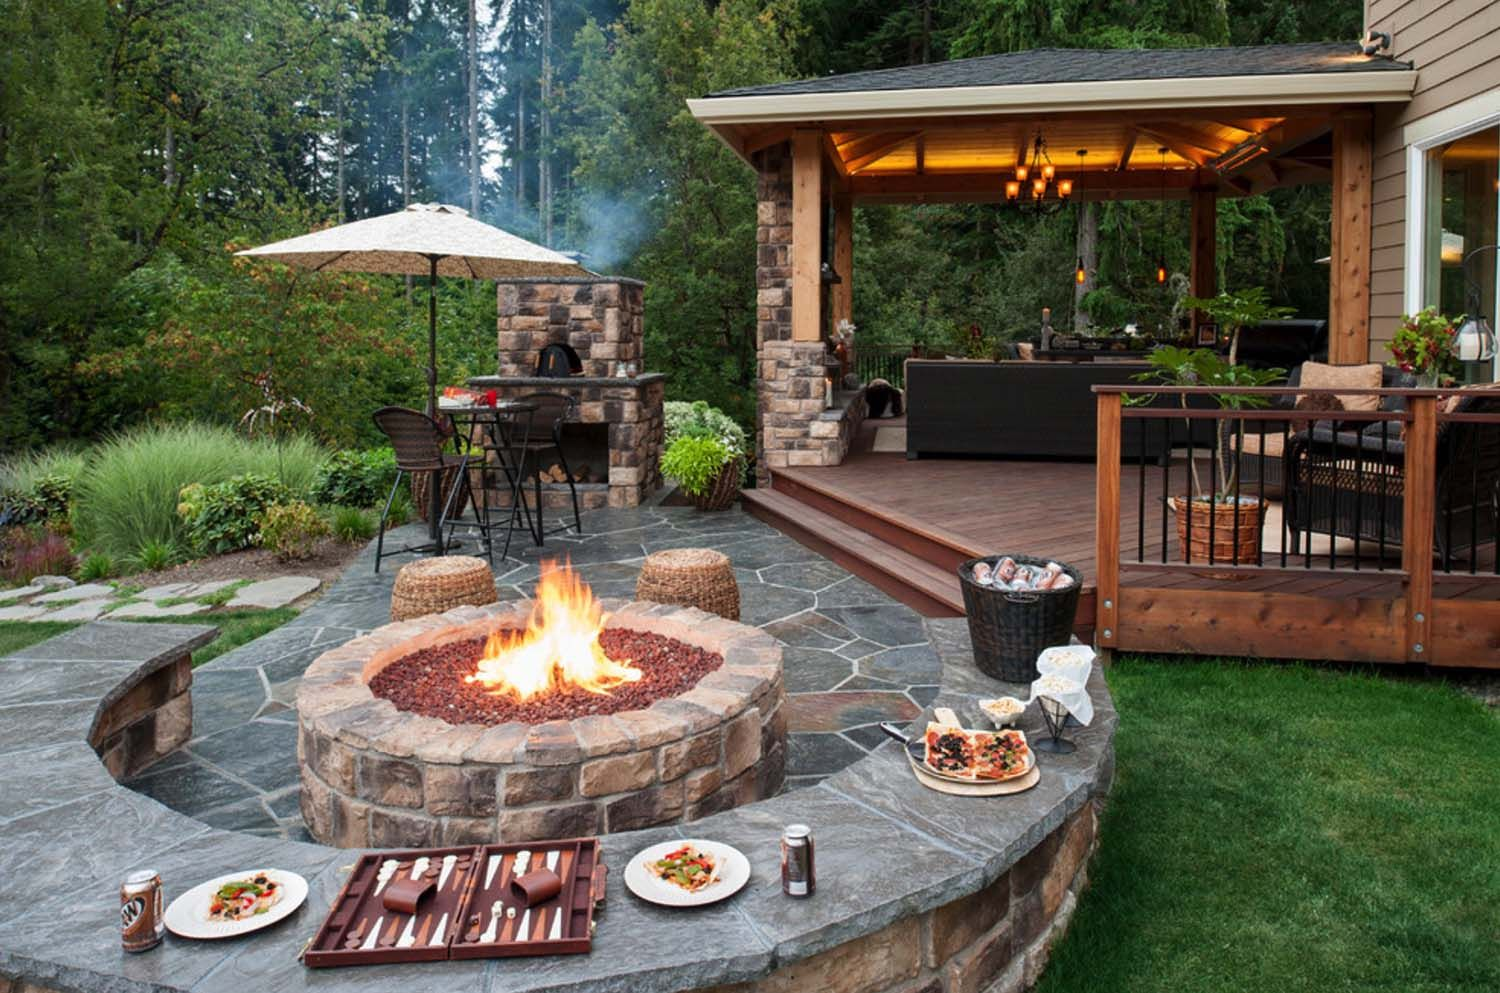 Garden fire features   Incredibly inspiring contemporary deck ideas with fire features